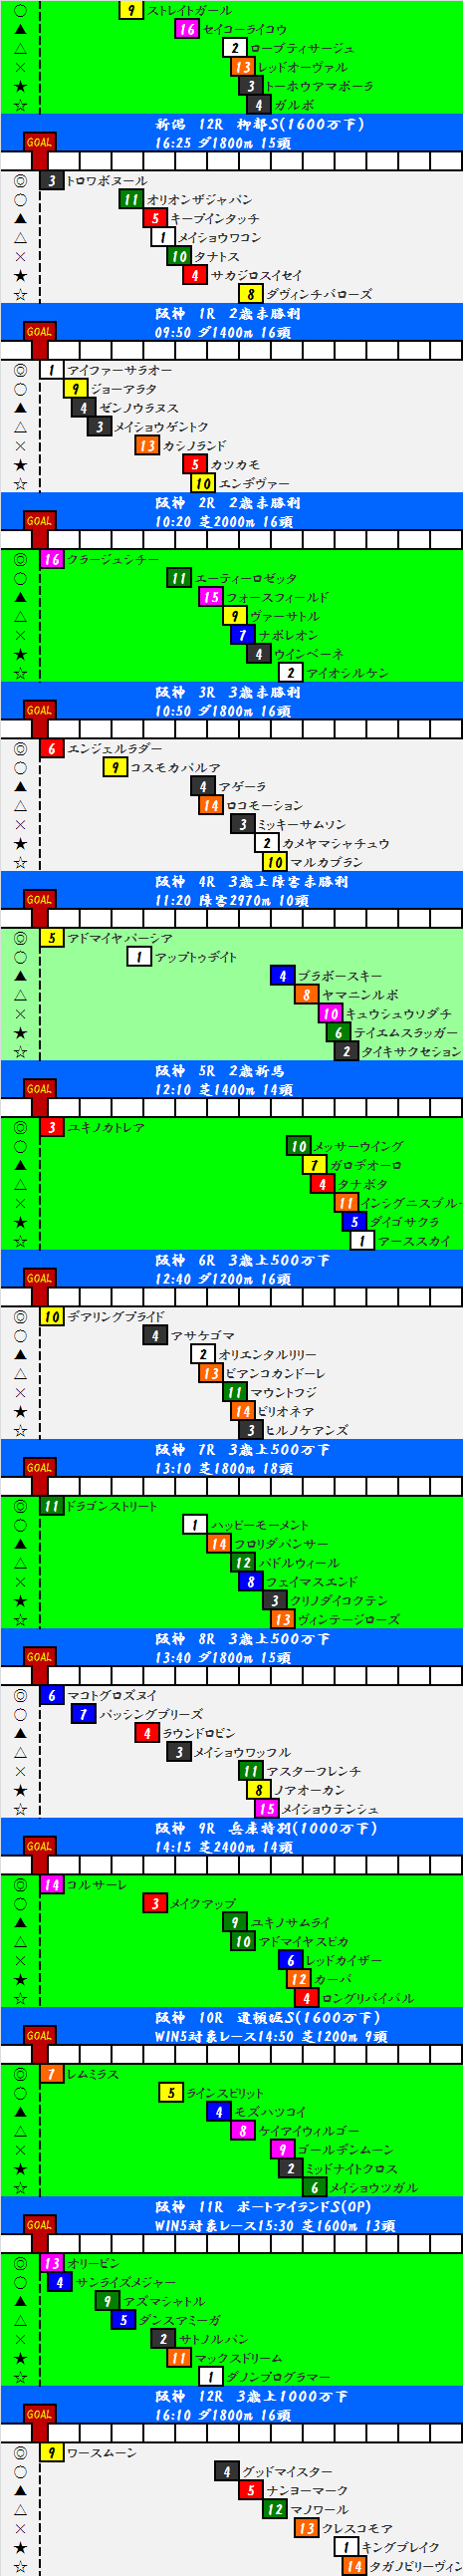 2014100502.png